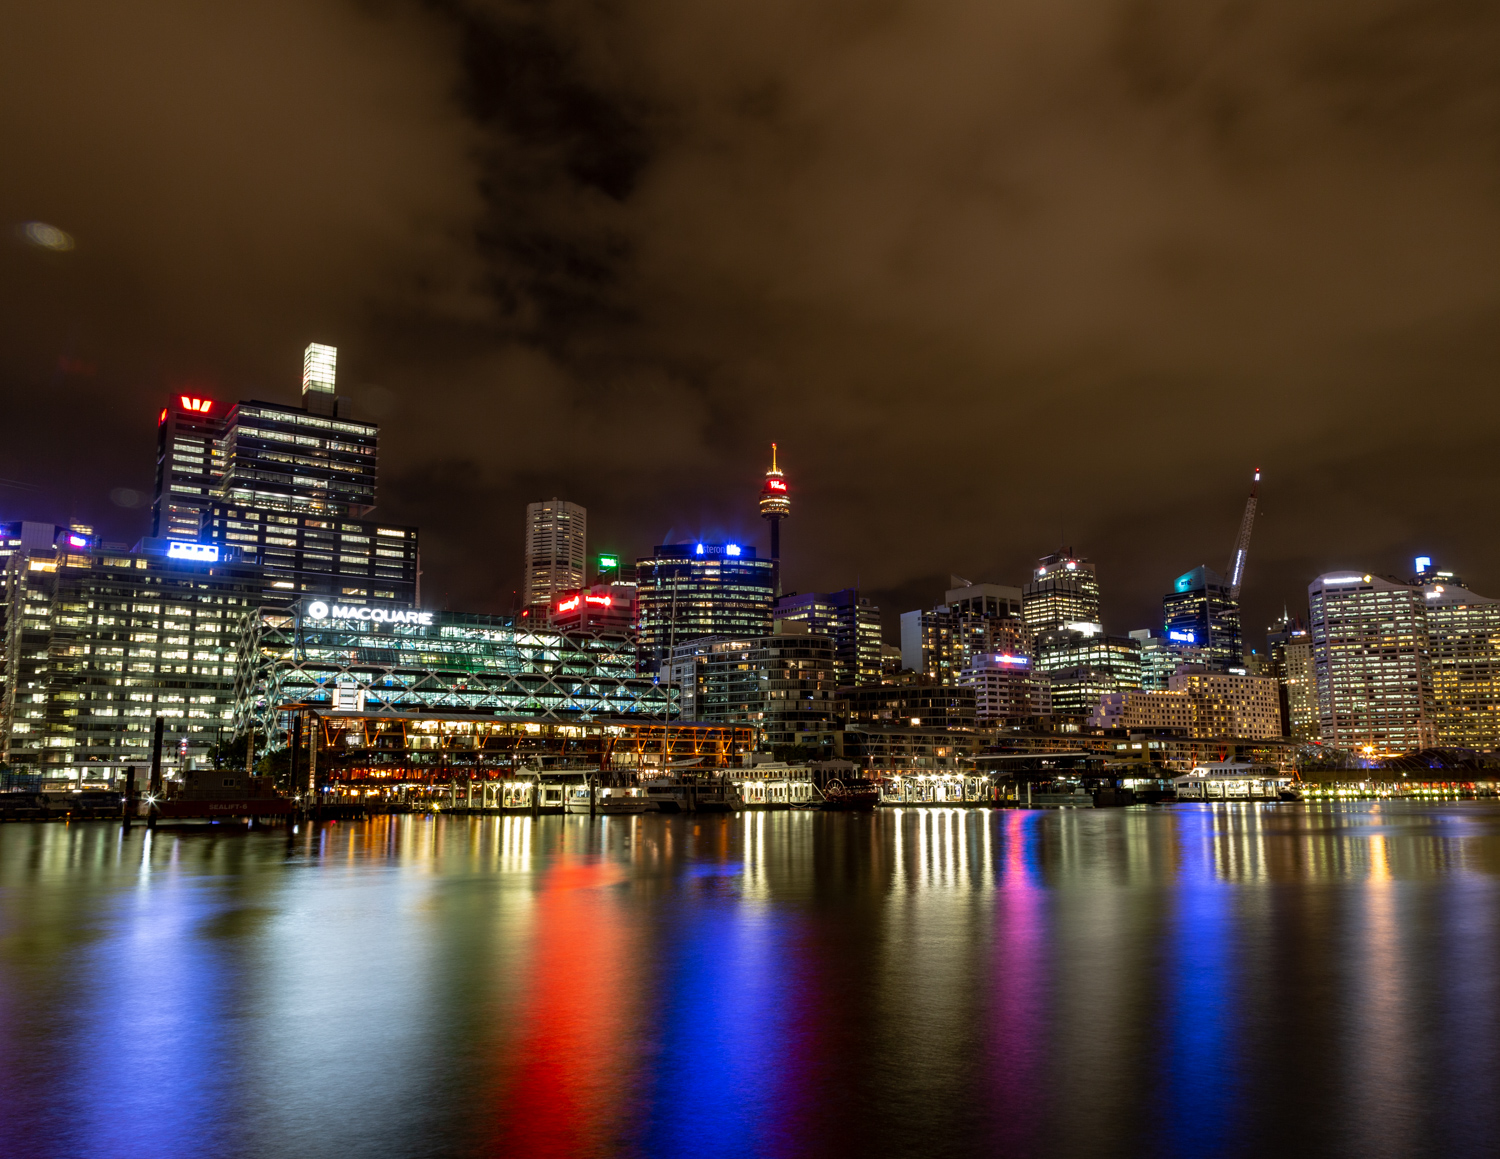 King Street Wharf at night, Darling Harbour